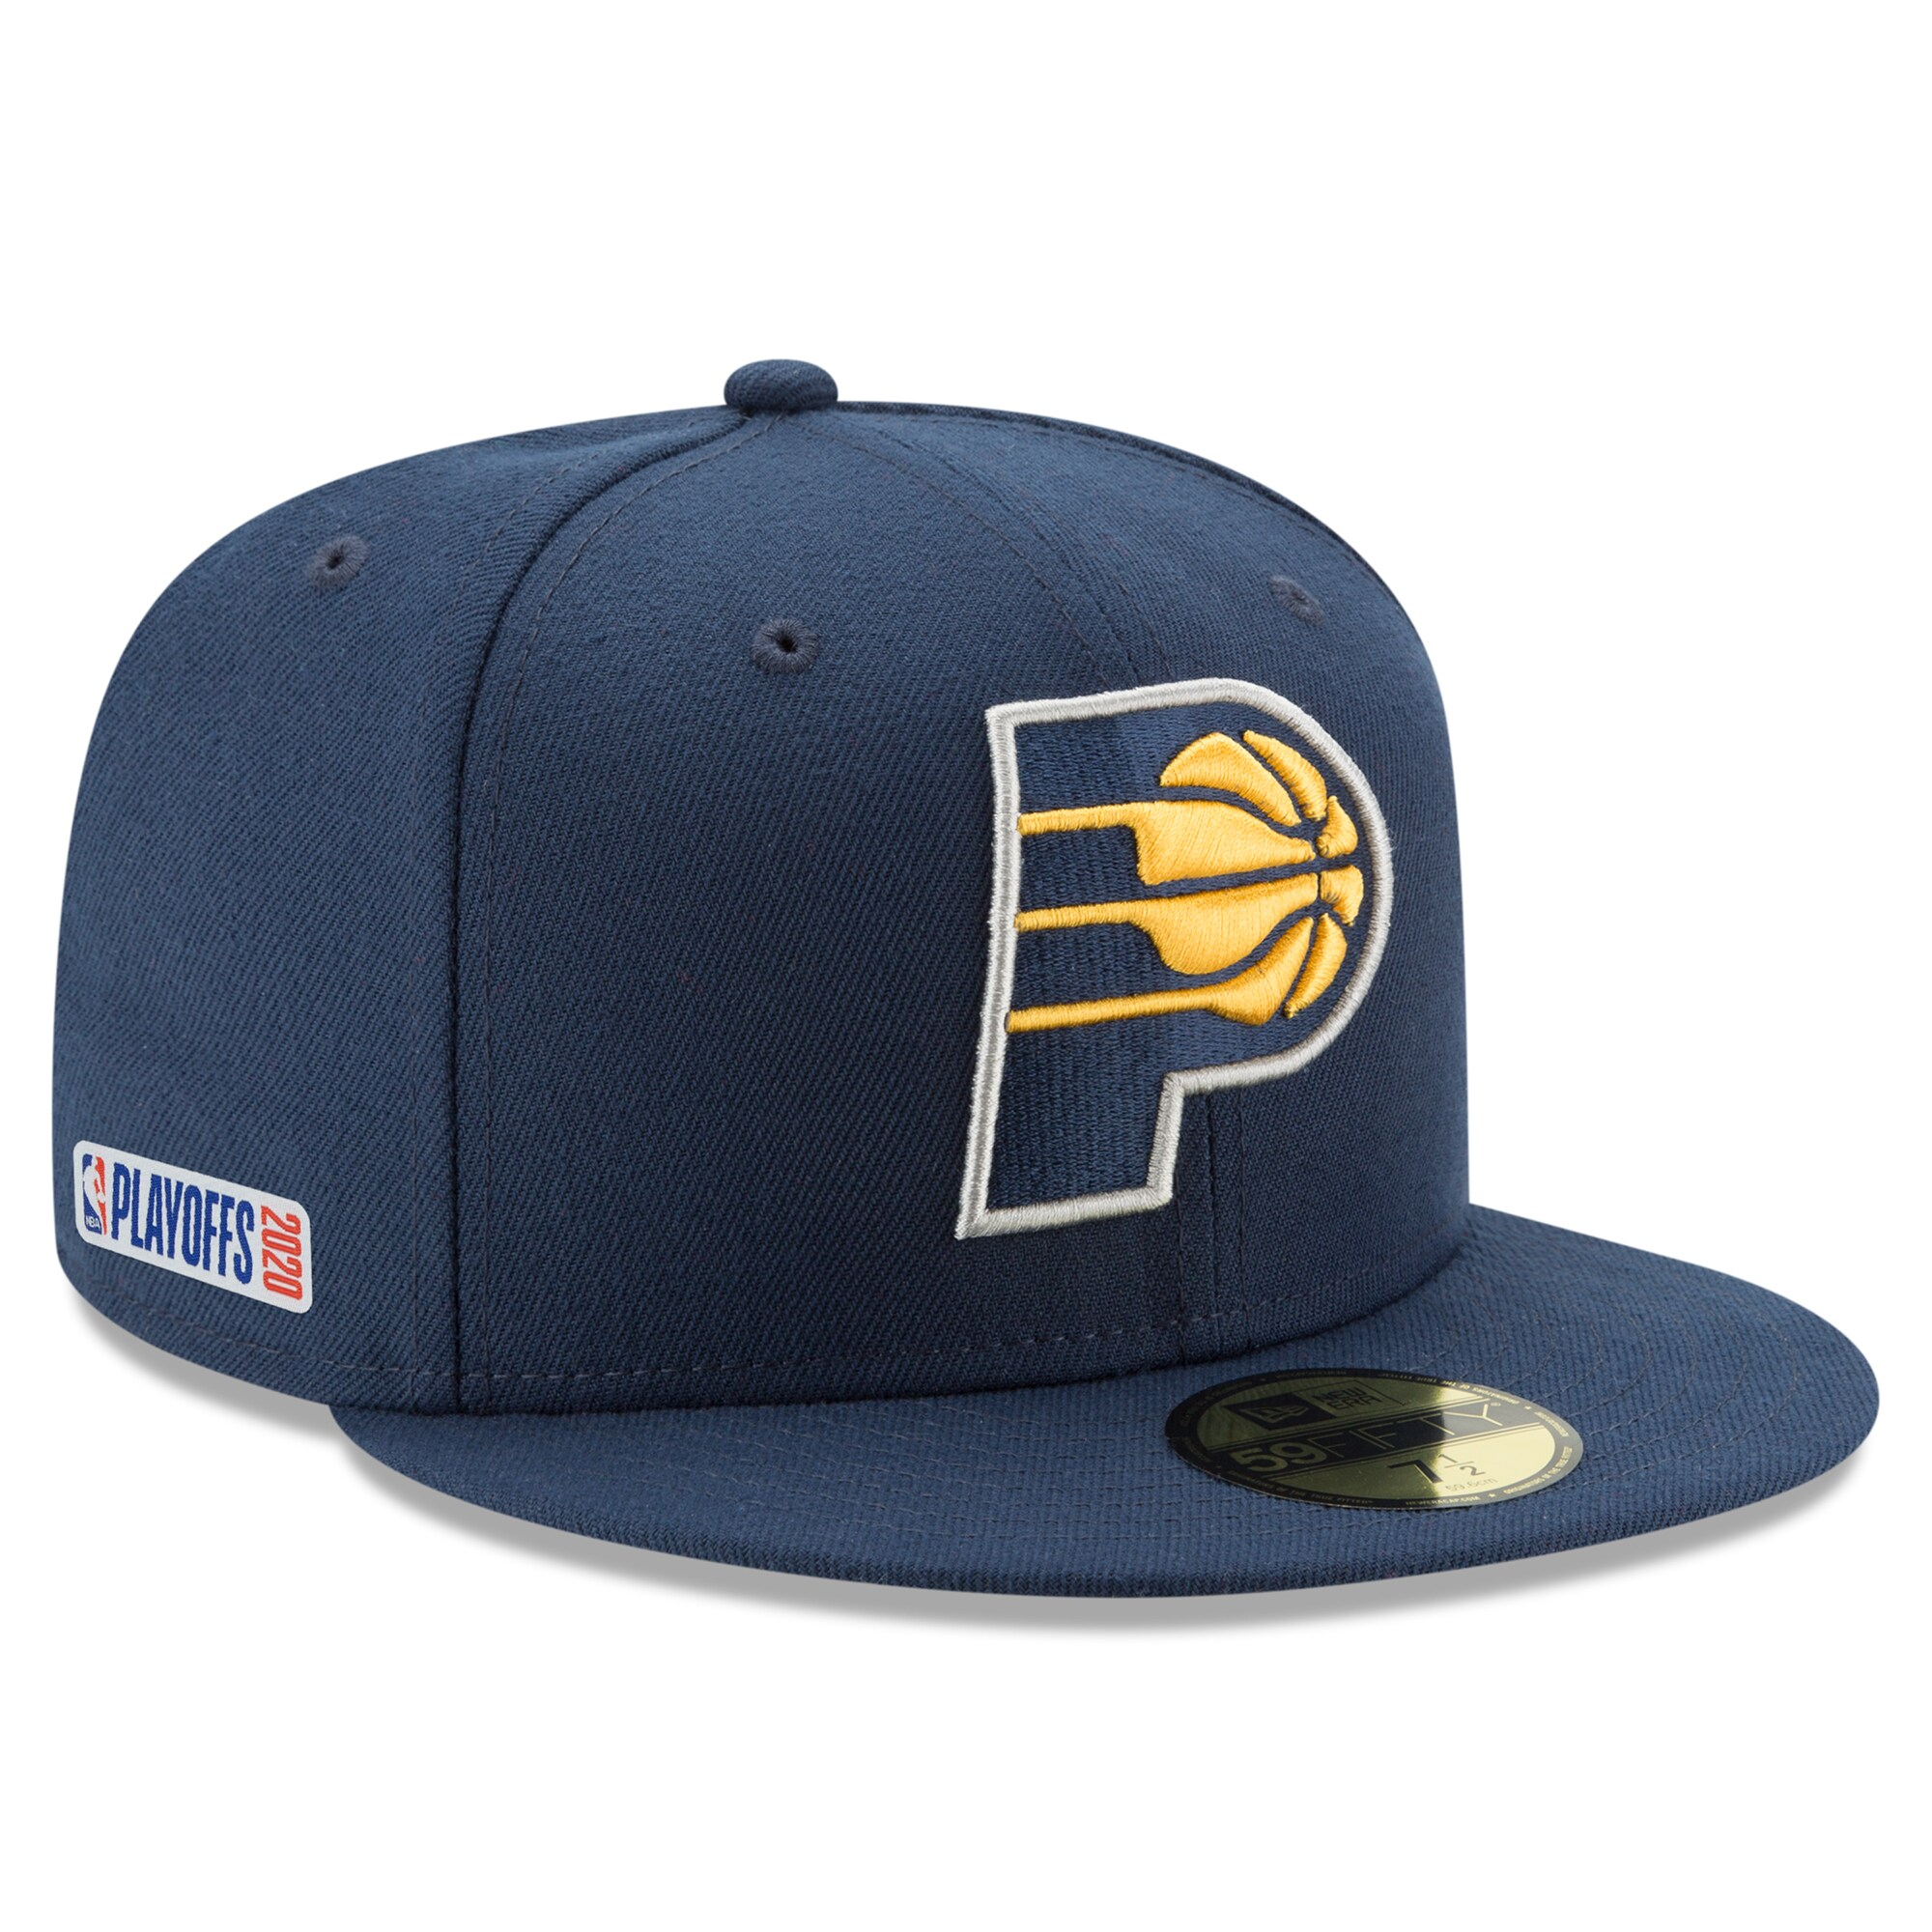 Indiana Pacers New Era 2020 NBA Playoffs Bound 59FIFTY Fitted Hat - Navy